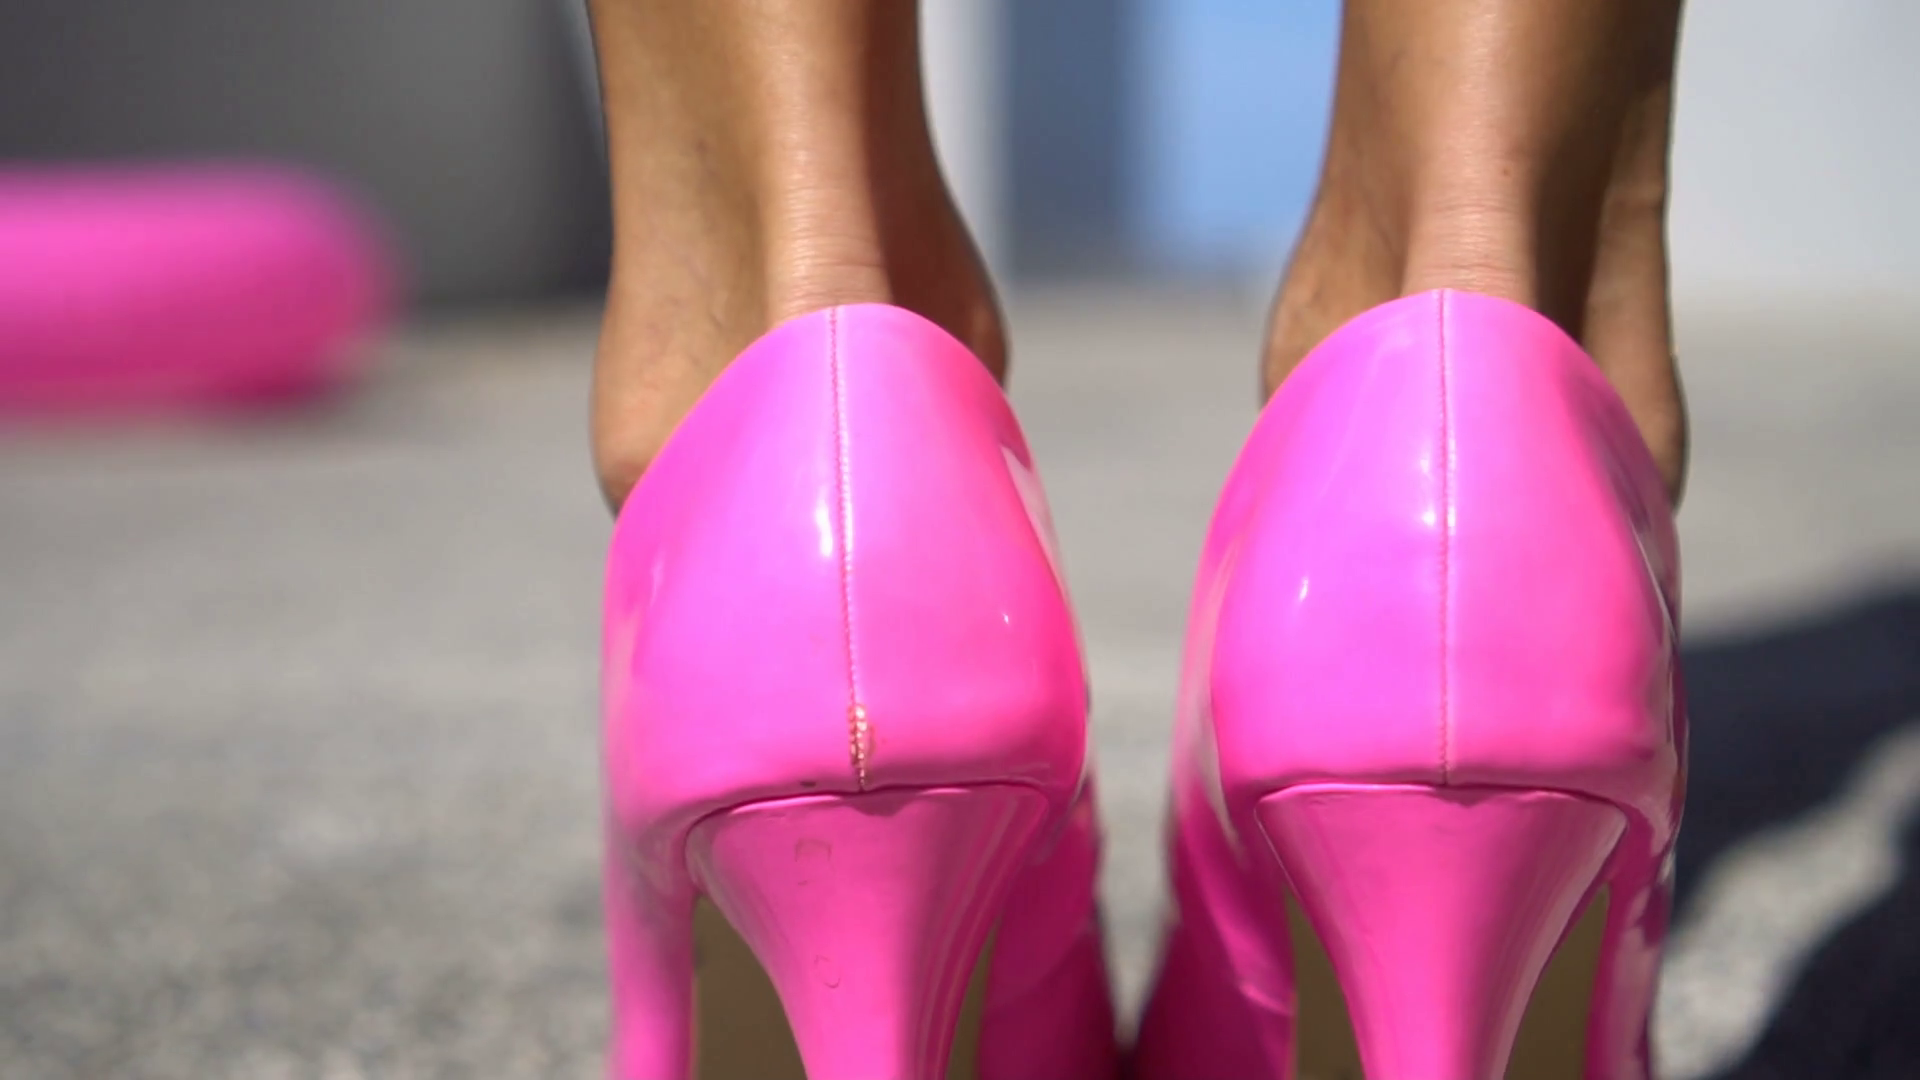 https://www.videoblocks.com/video/closeup-back-view-of-female-legs-walking-in-bright-pink-high-heels---video-in-slow-motion-hx4tlaufgizehg7t0